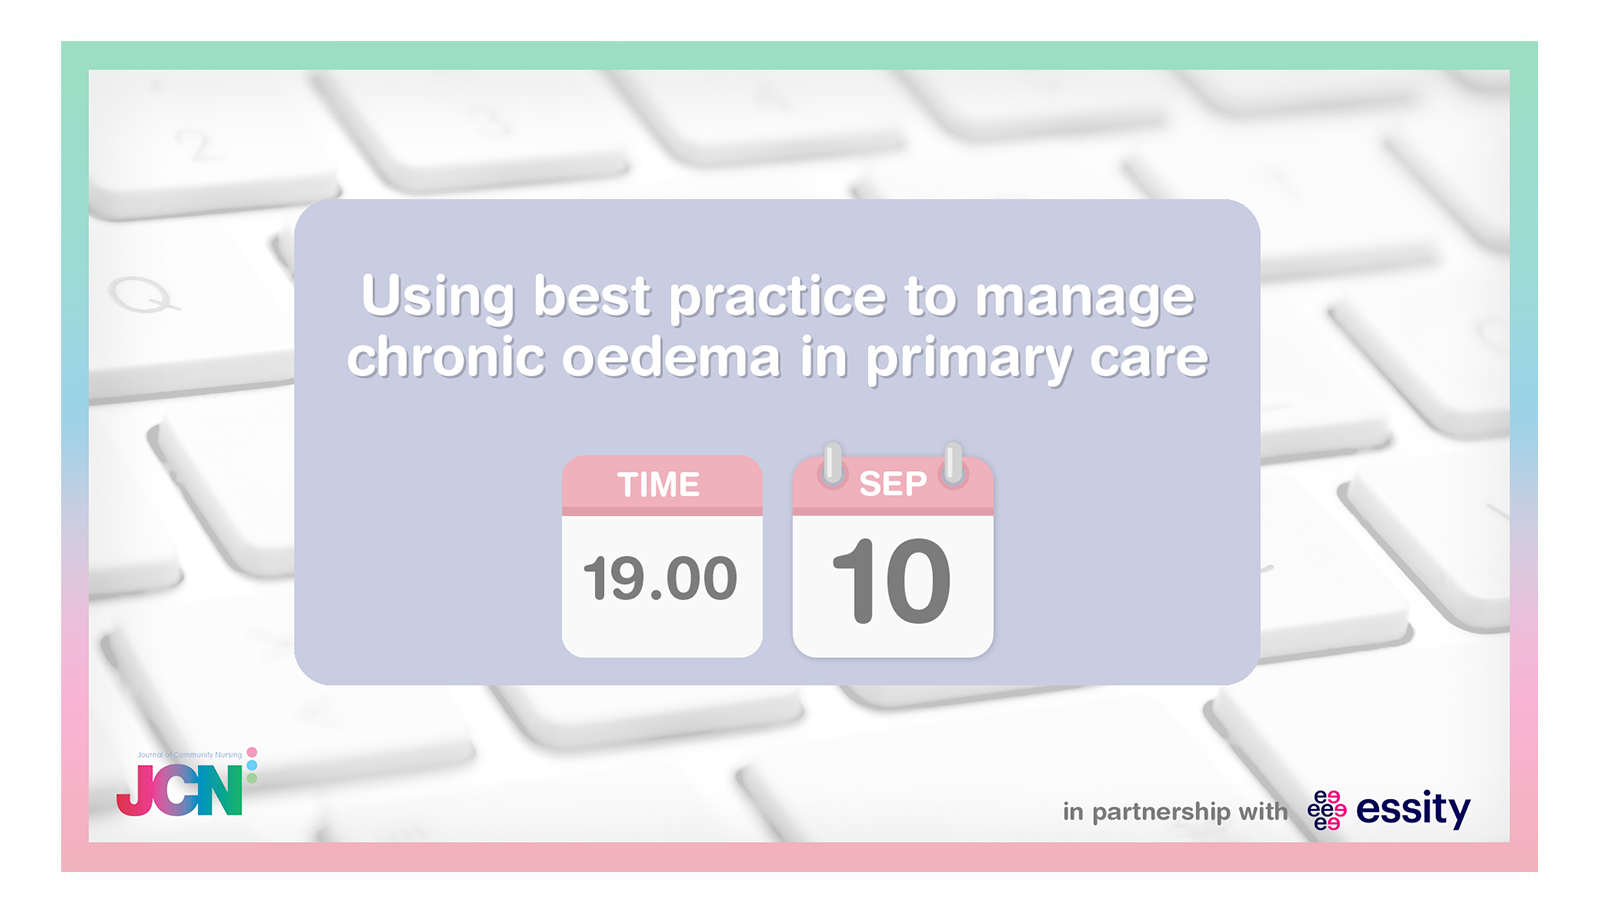 Facebook Live: Using best practice to manage chronic oedema in primary care